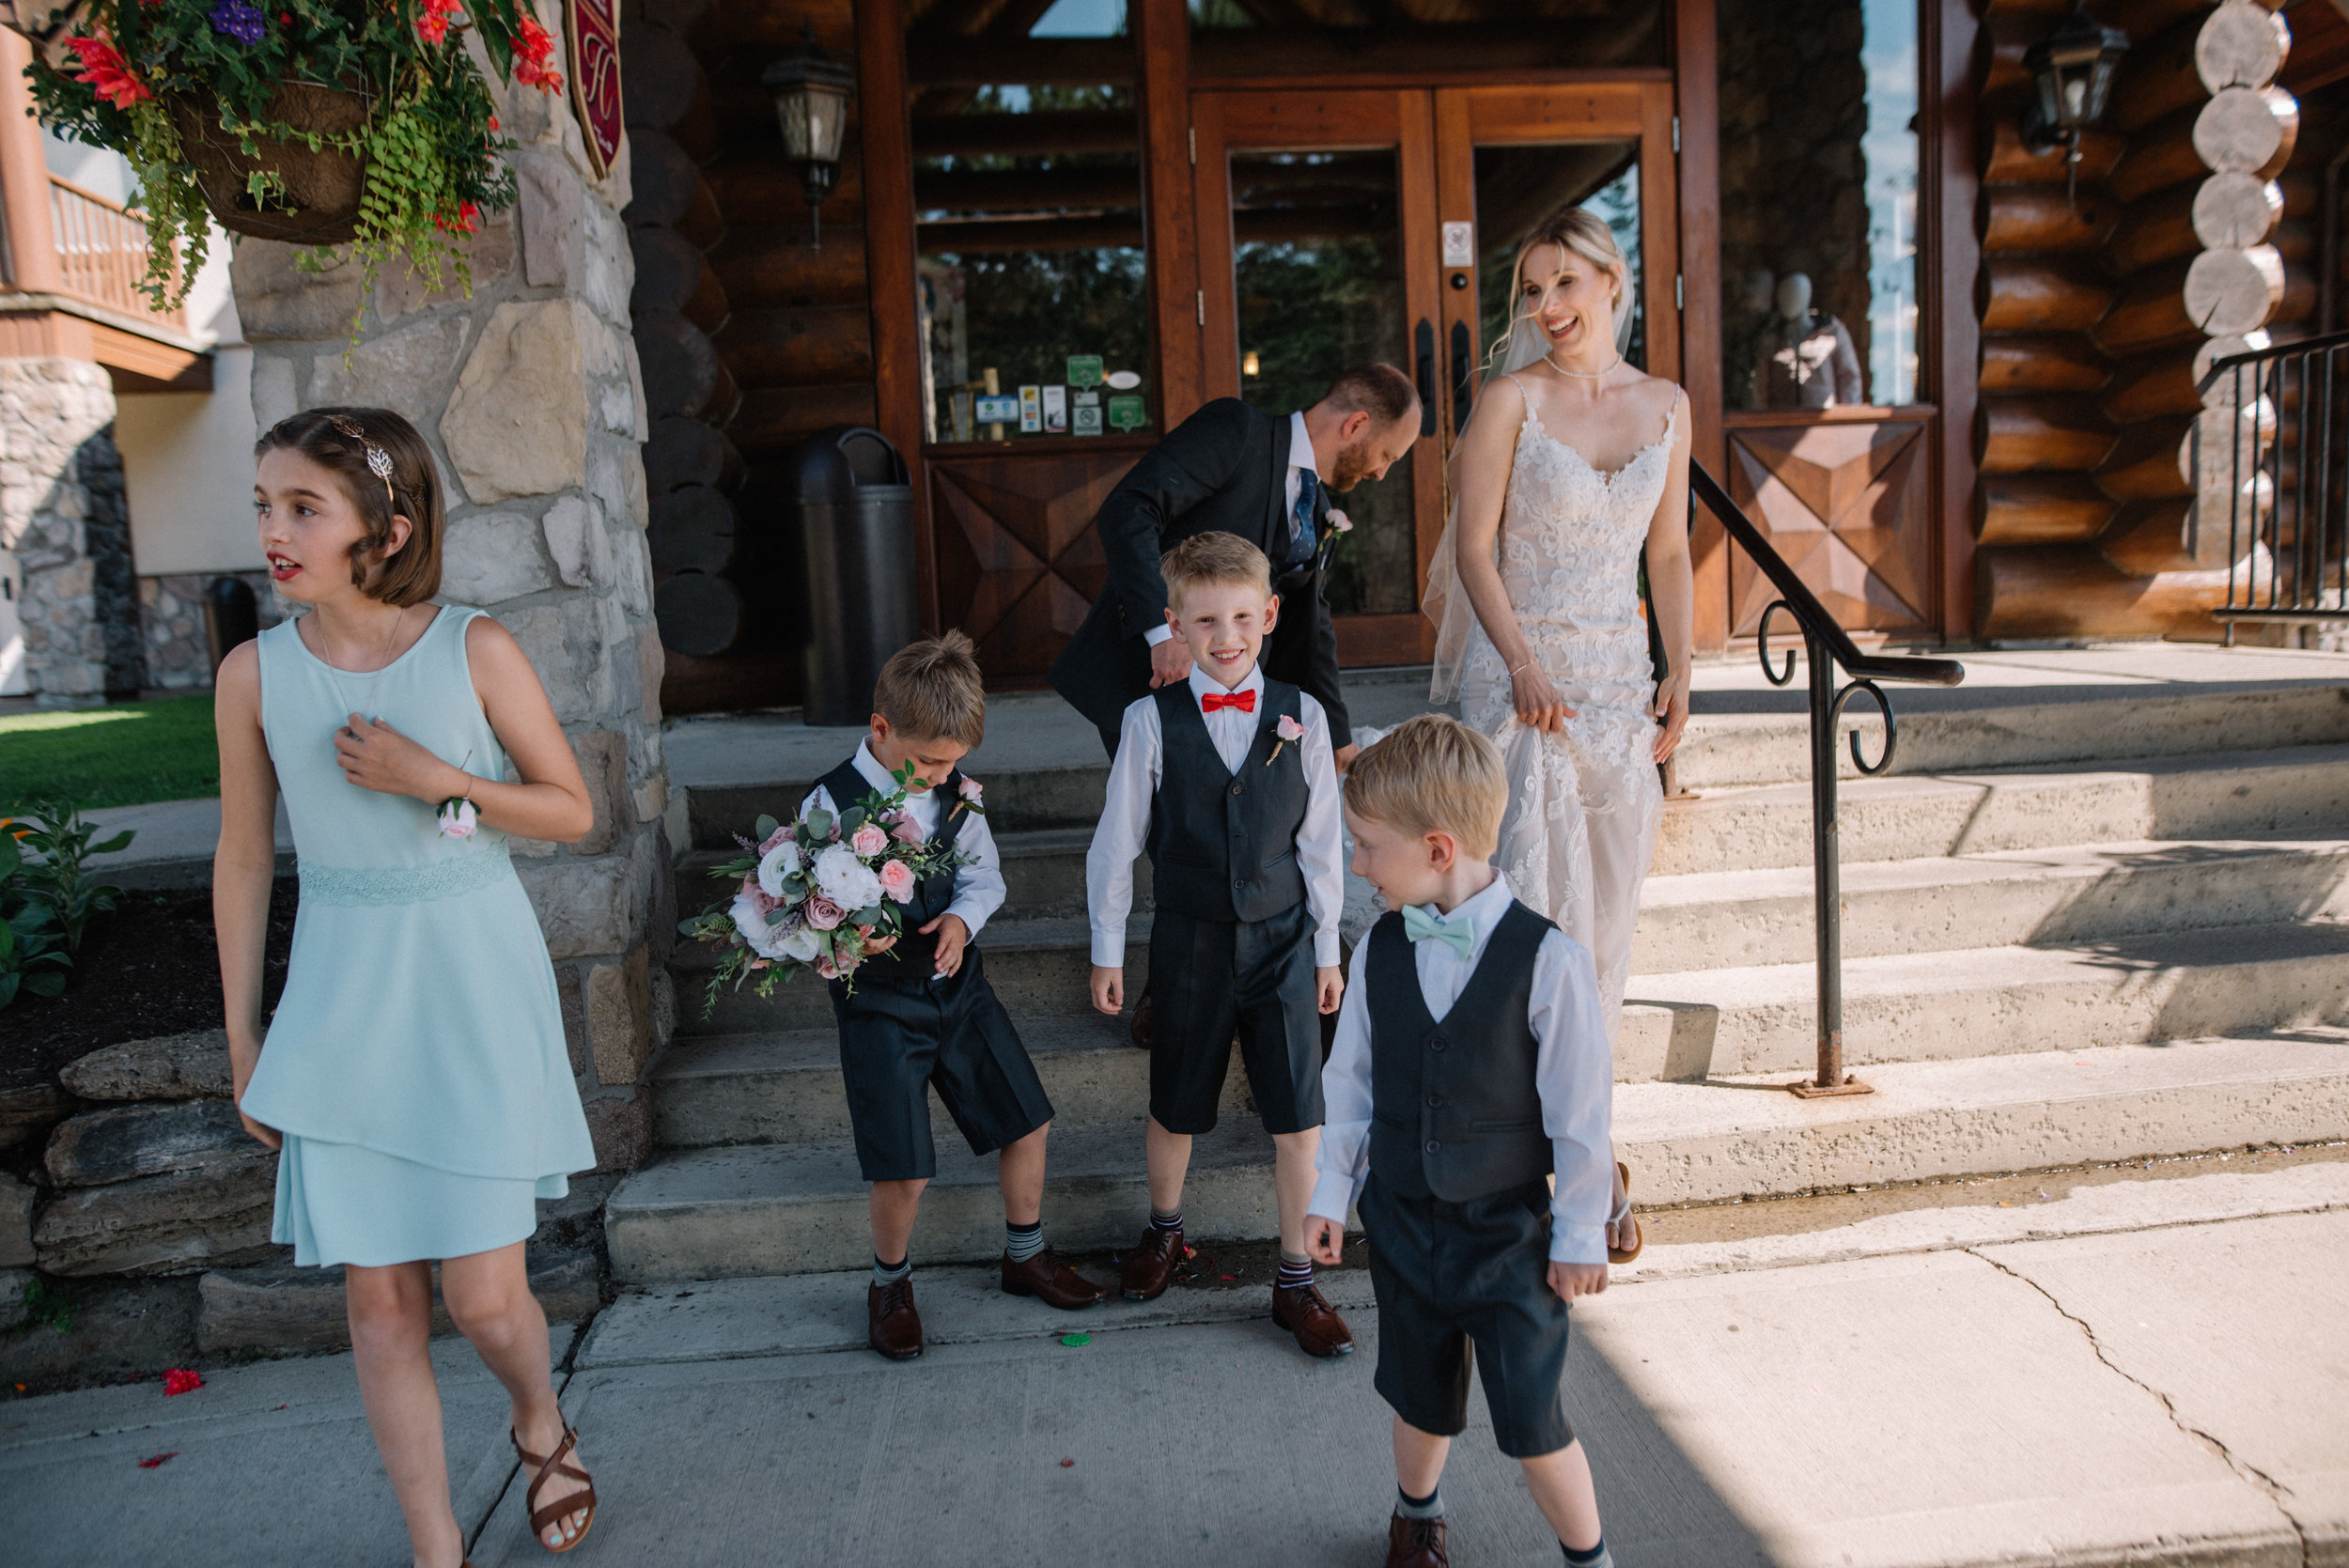 gatineau_photographe_mariage_ottawa_wedding_photography_documentary_candid_unposed_lifestyle_photography_photographie_613_family_famille (54).jpg